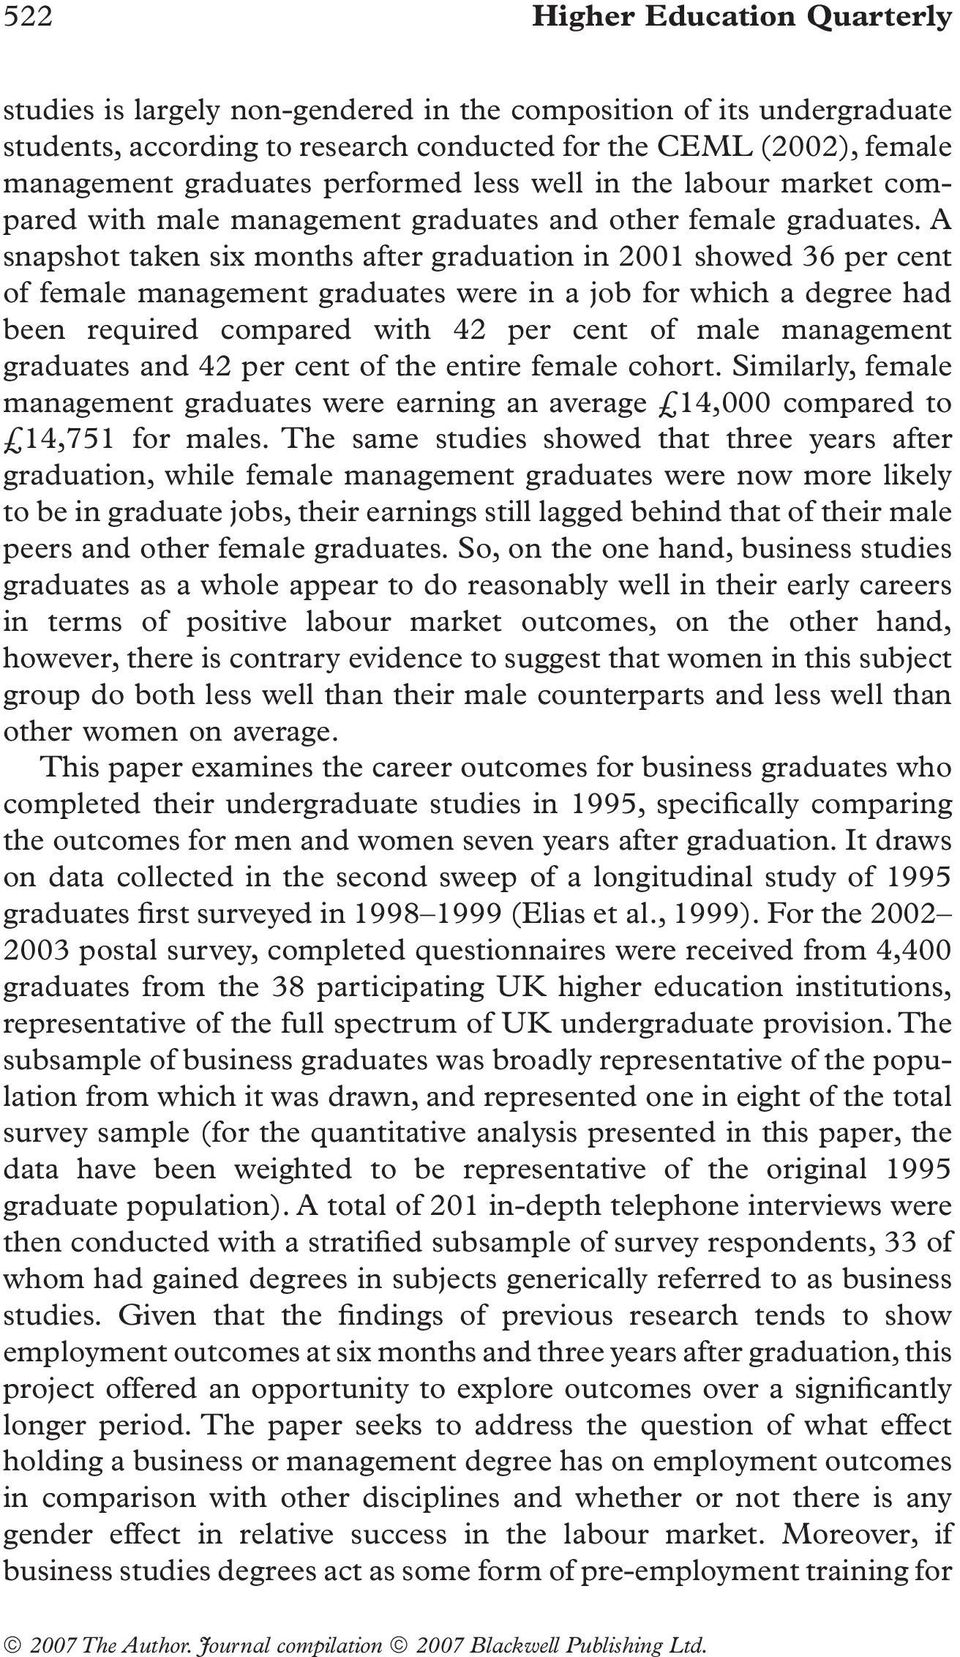 A snapshot taken six months after graduation in 2001 showed 36 per cent of female management graduates were in a job for which a degree had been required compared with 42 per cent of male management